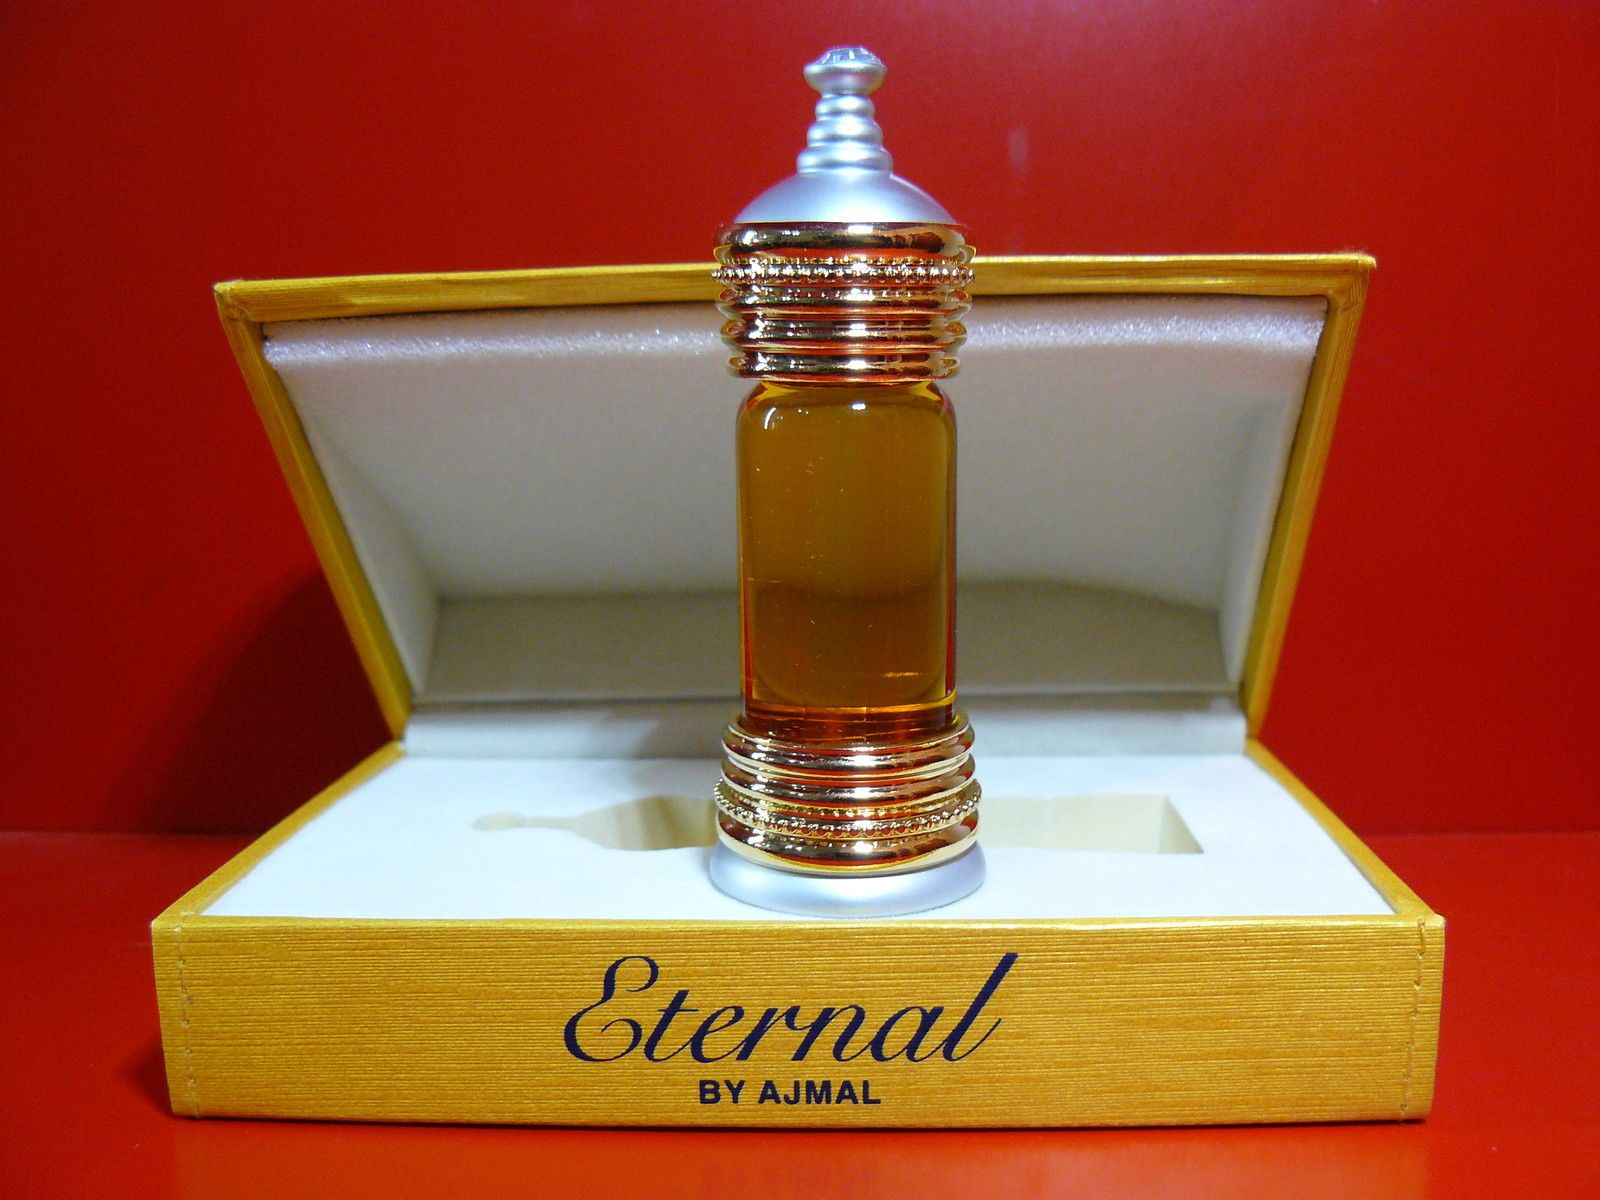 Musk Eternal Concentrated Perfume Oil By Ajmal 12ml Fragrance Family Absolute Feminine Hygiene Eternity 60 Ml Floral White Character